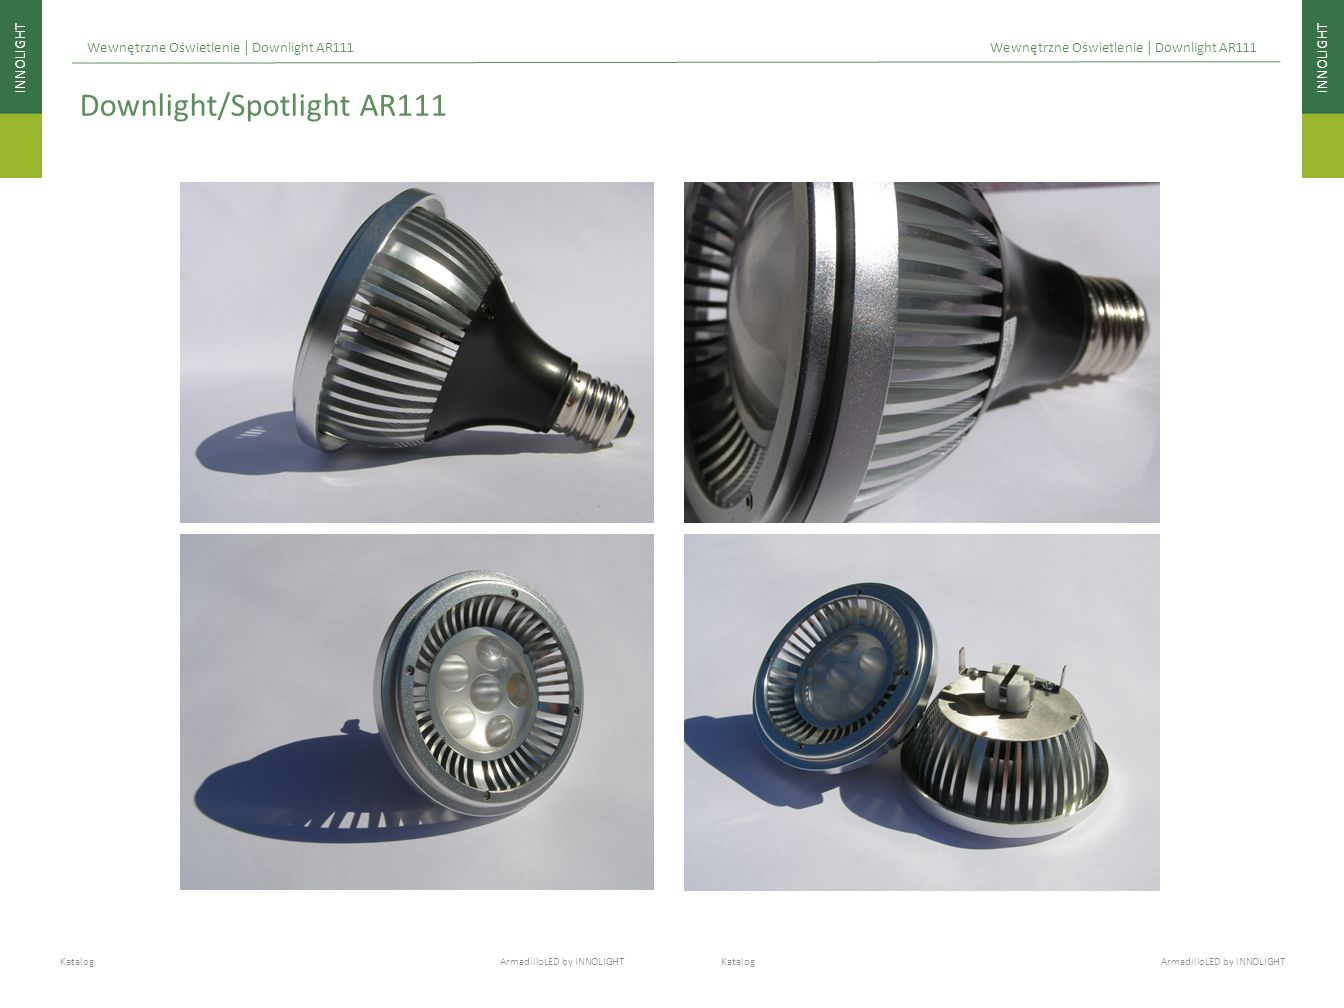 Downlight/Spotlight AR111